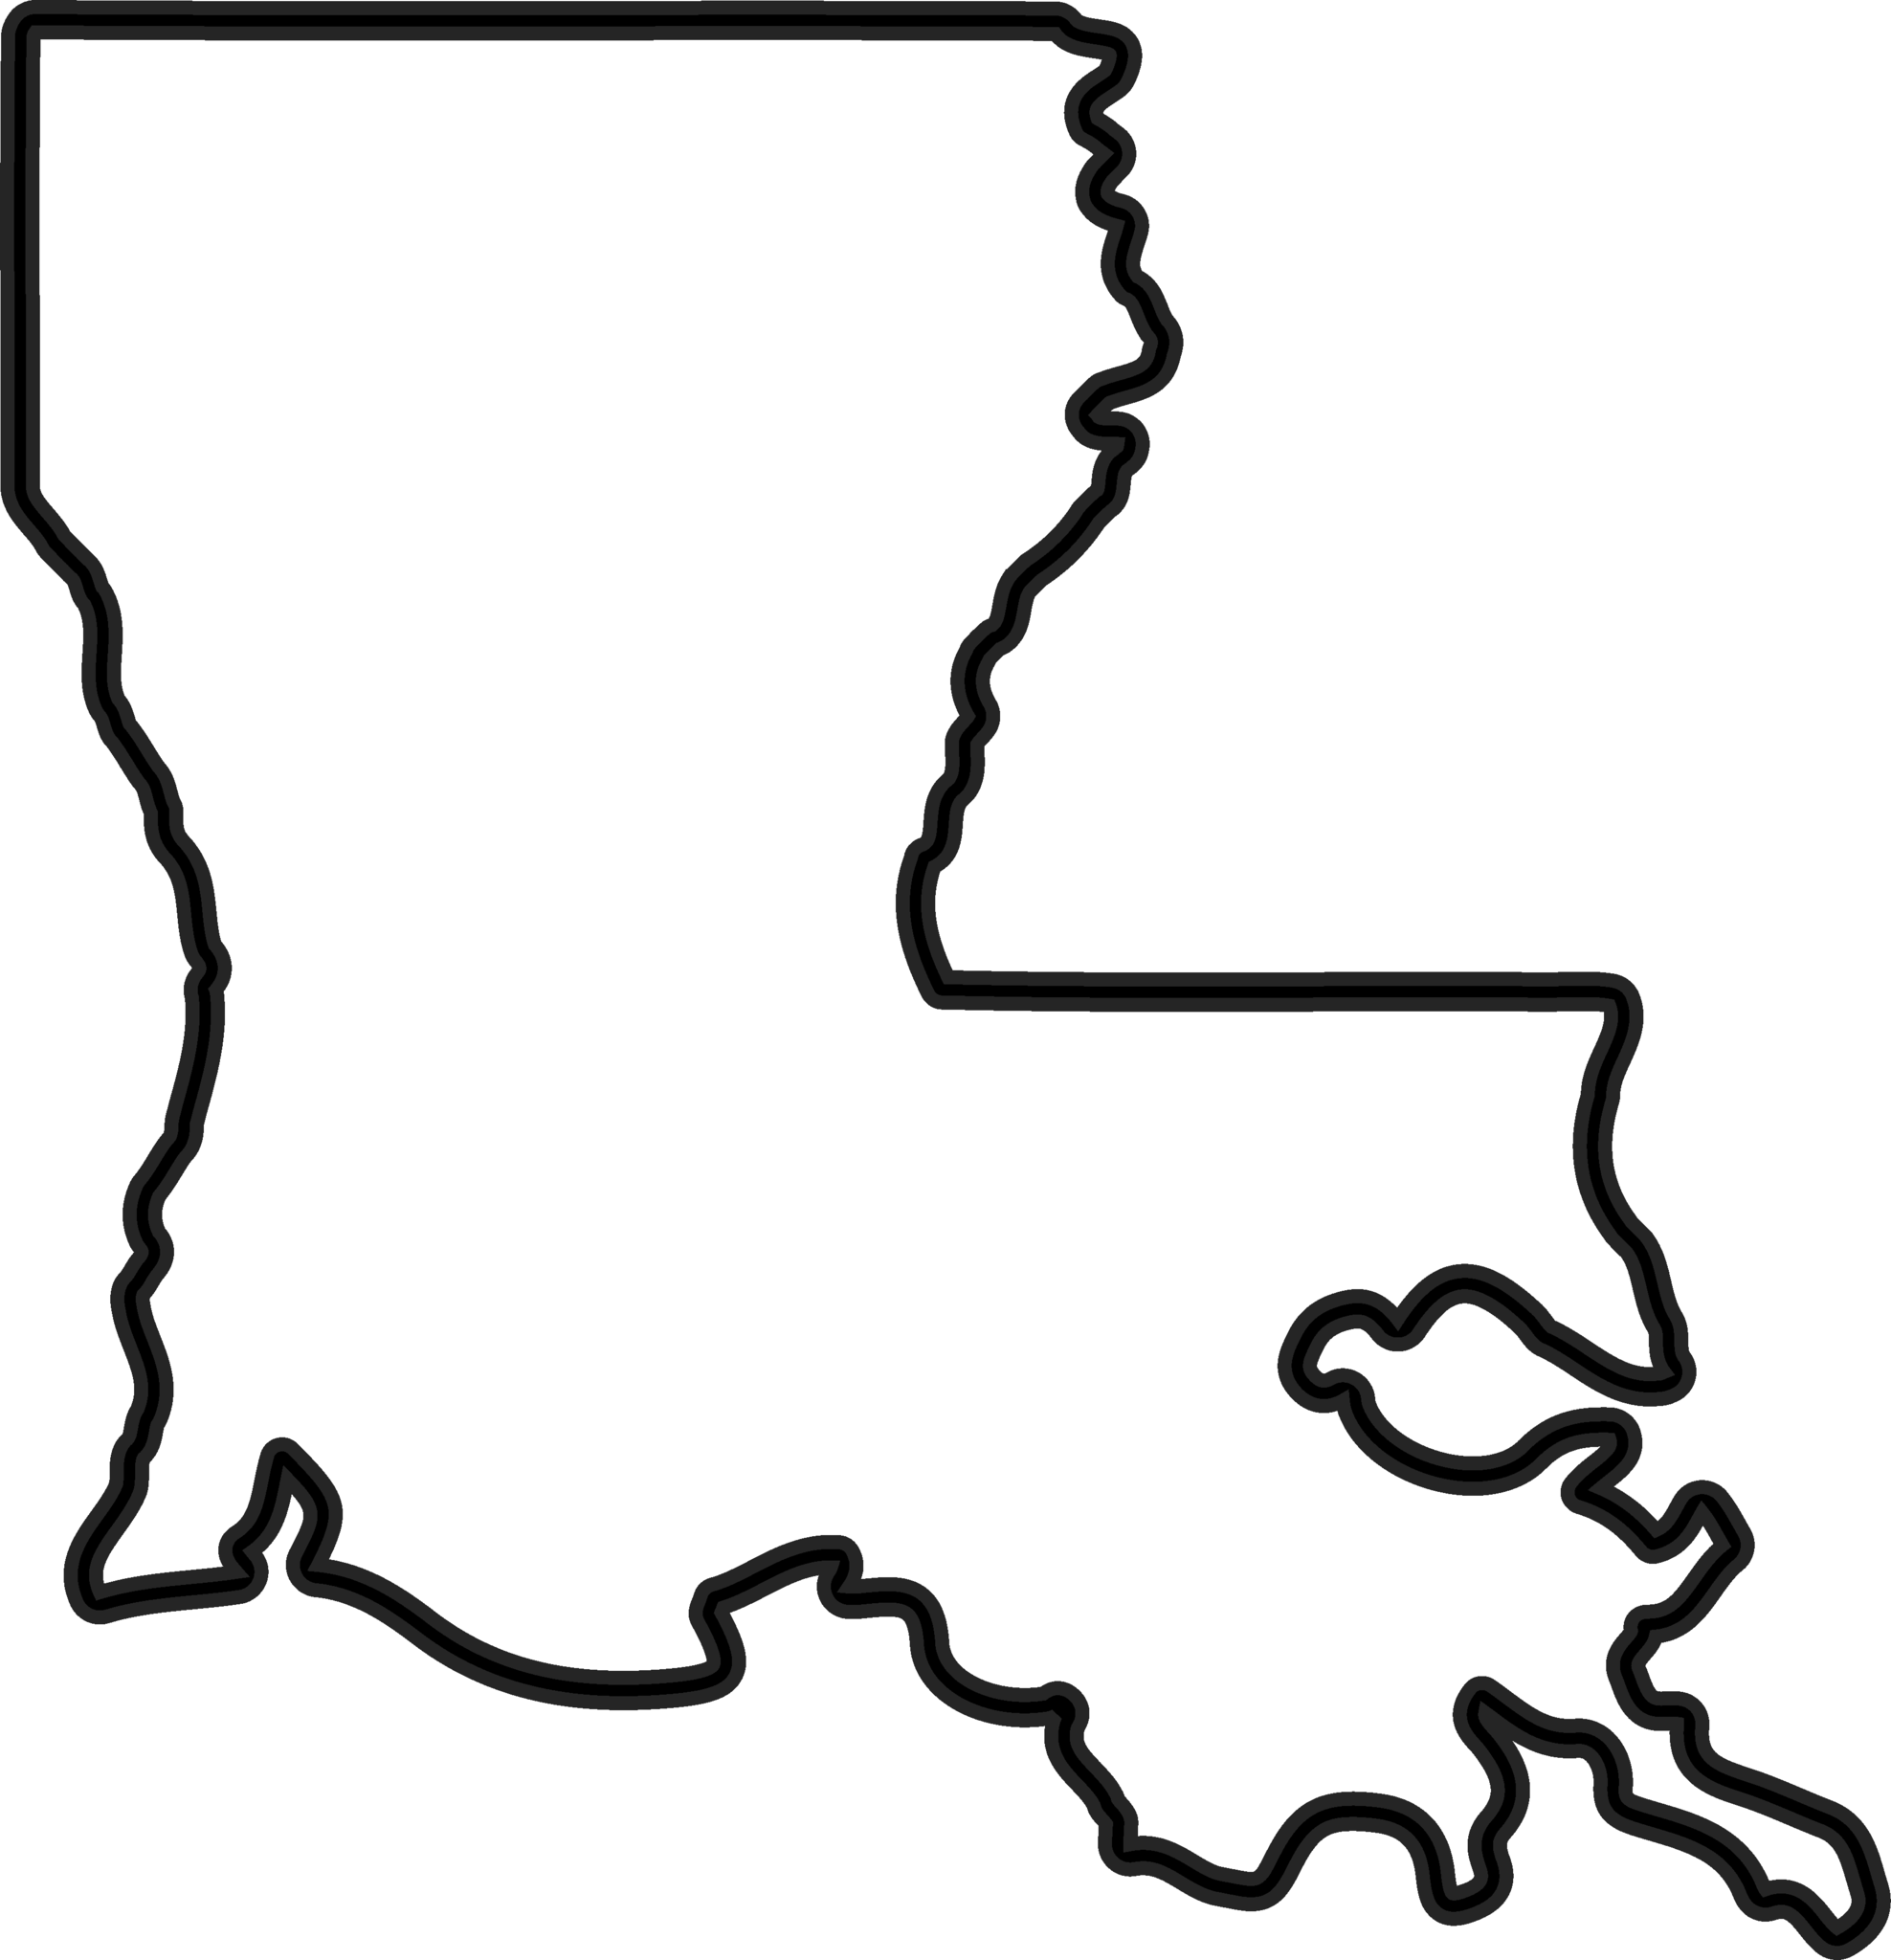 246 Louisiana free clipart.